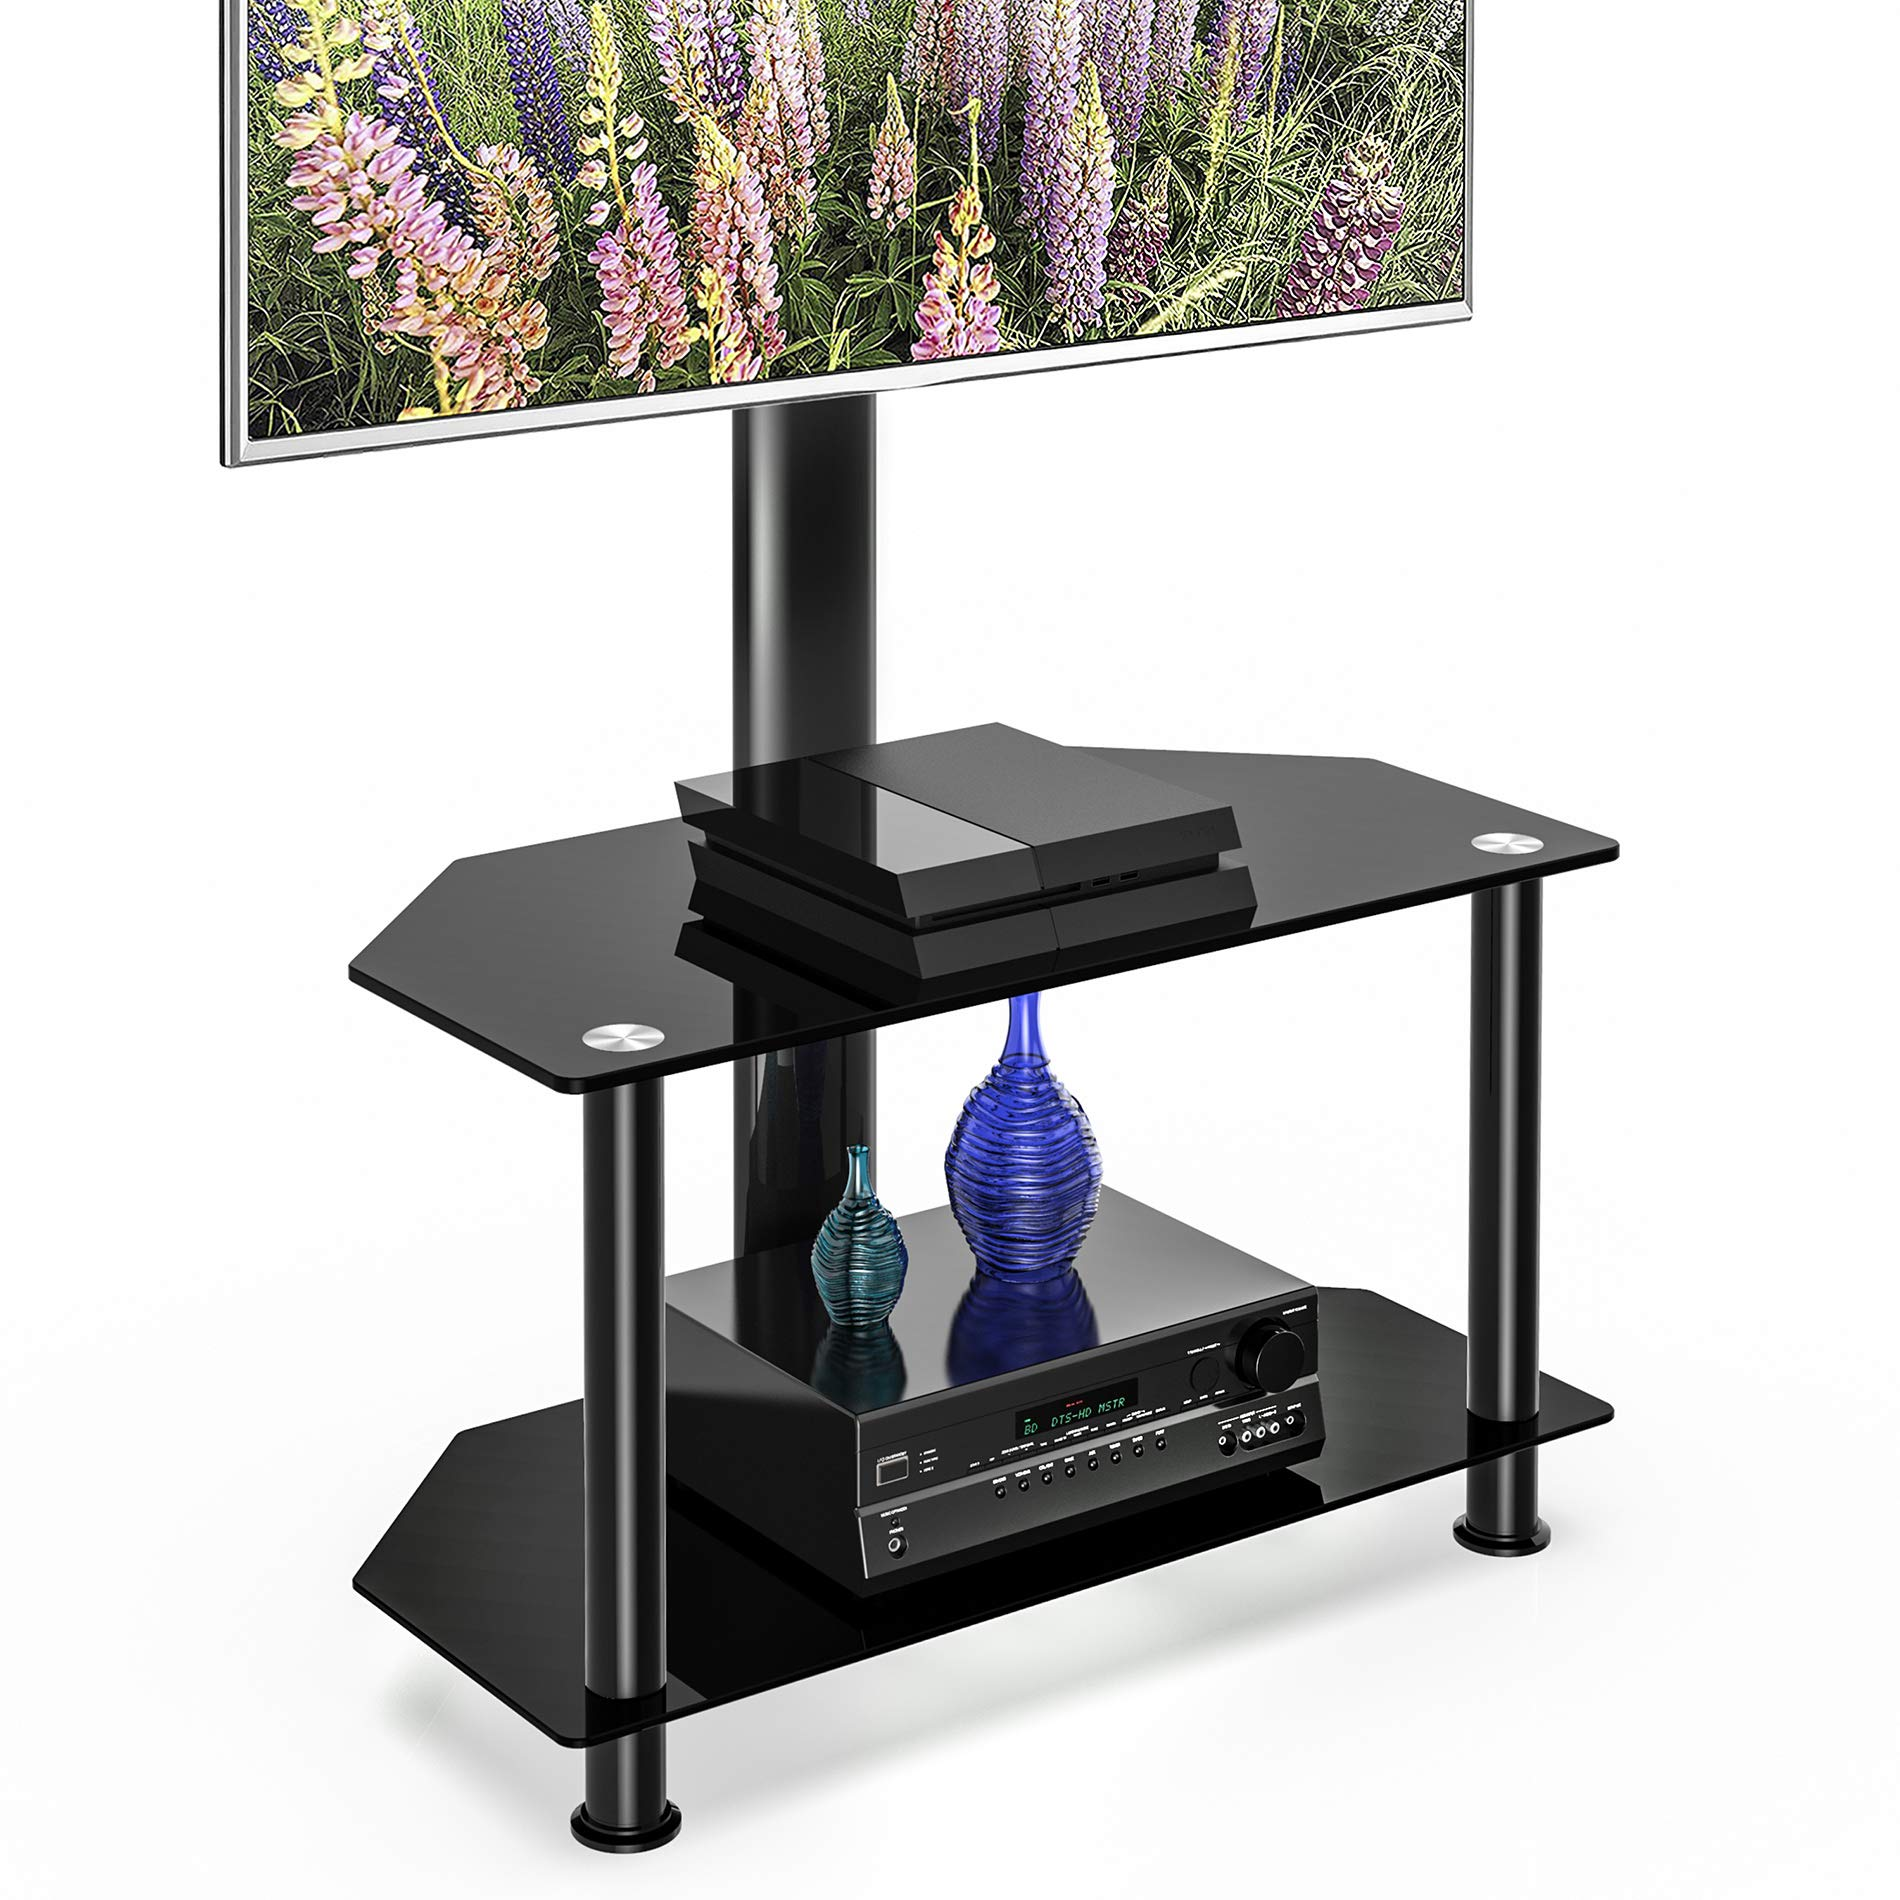 Floor Universal Swivel TV Stand with Safety Lock for 32-50 inch Flat Screen TV